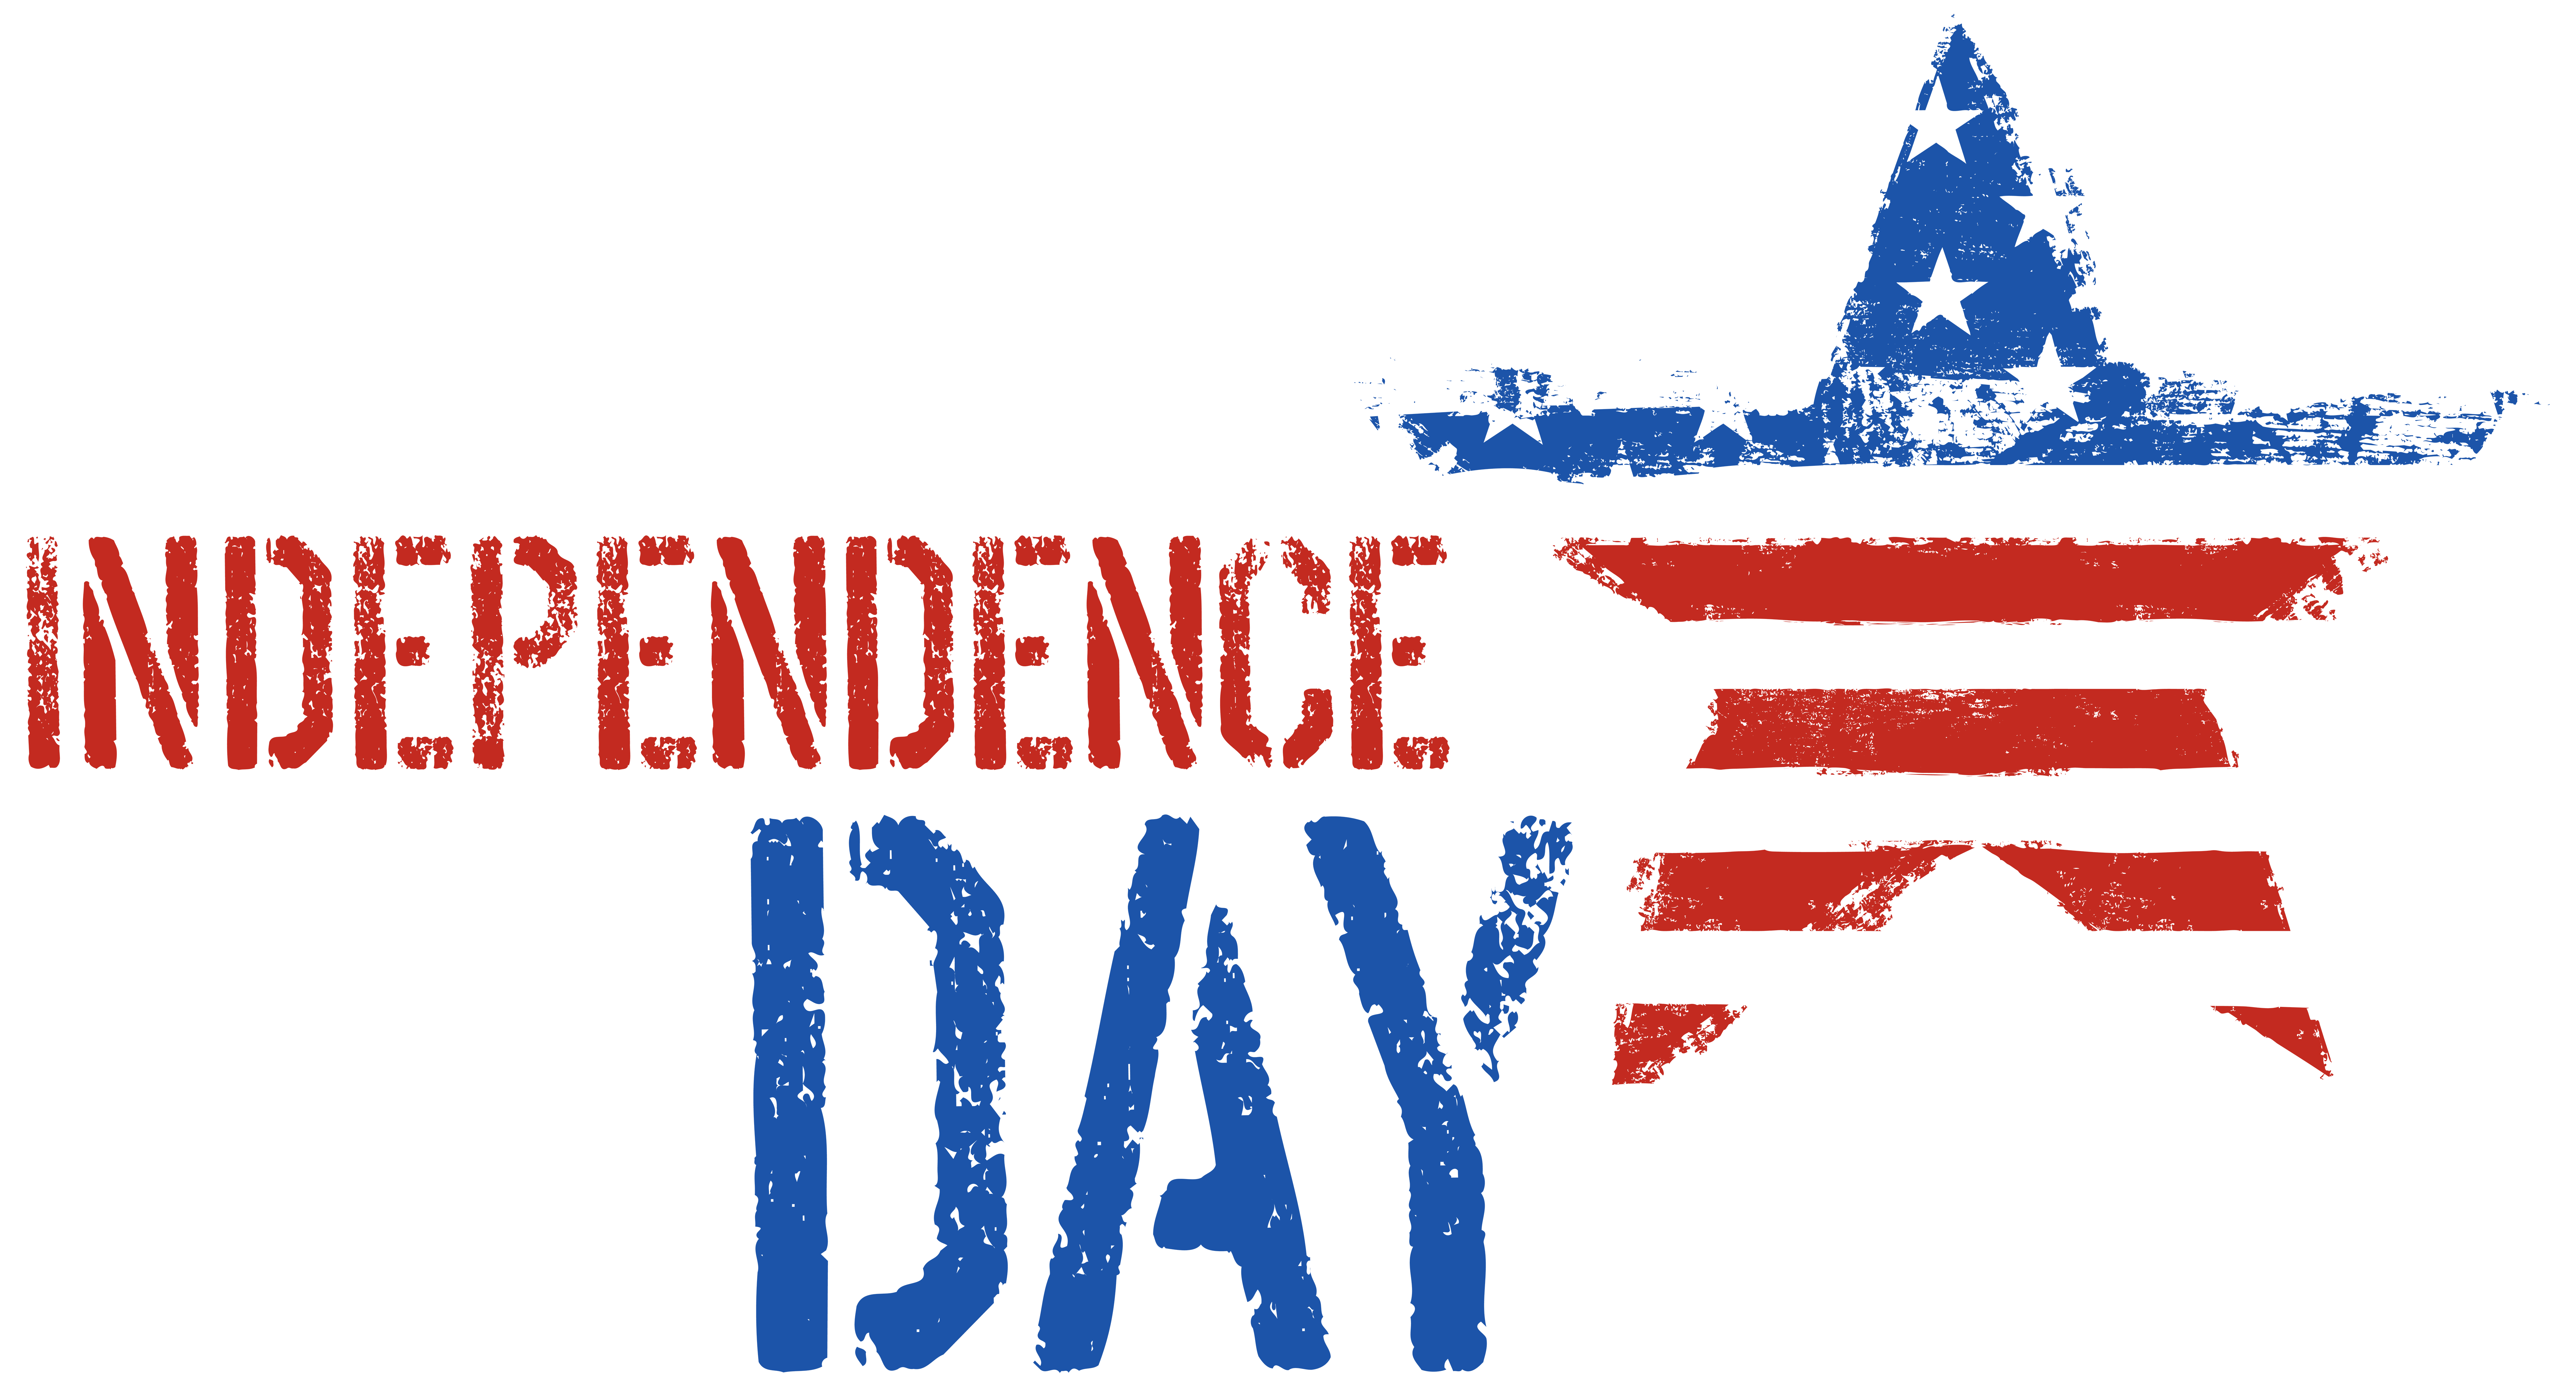 American Independence Day Png - Independence Day Clipart Png